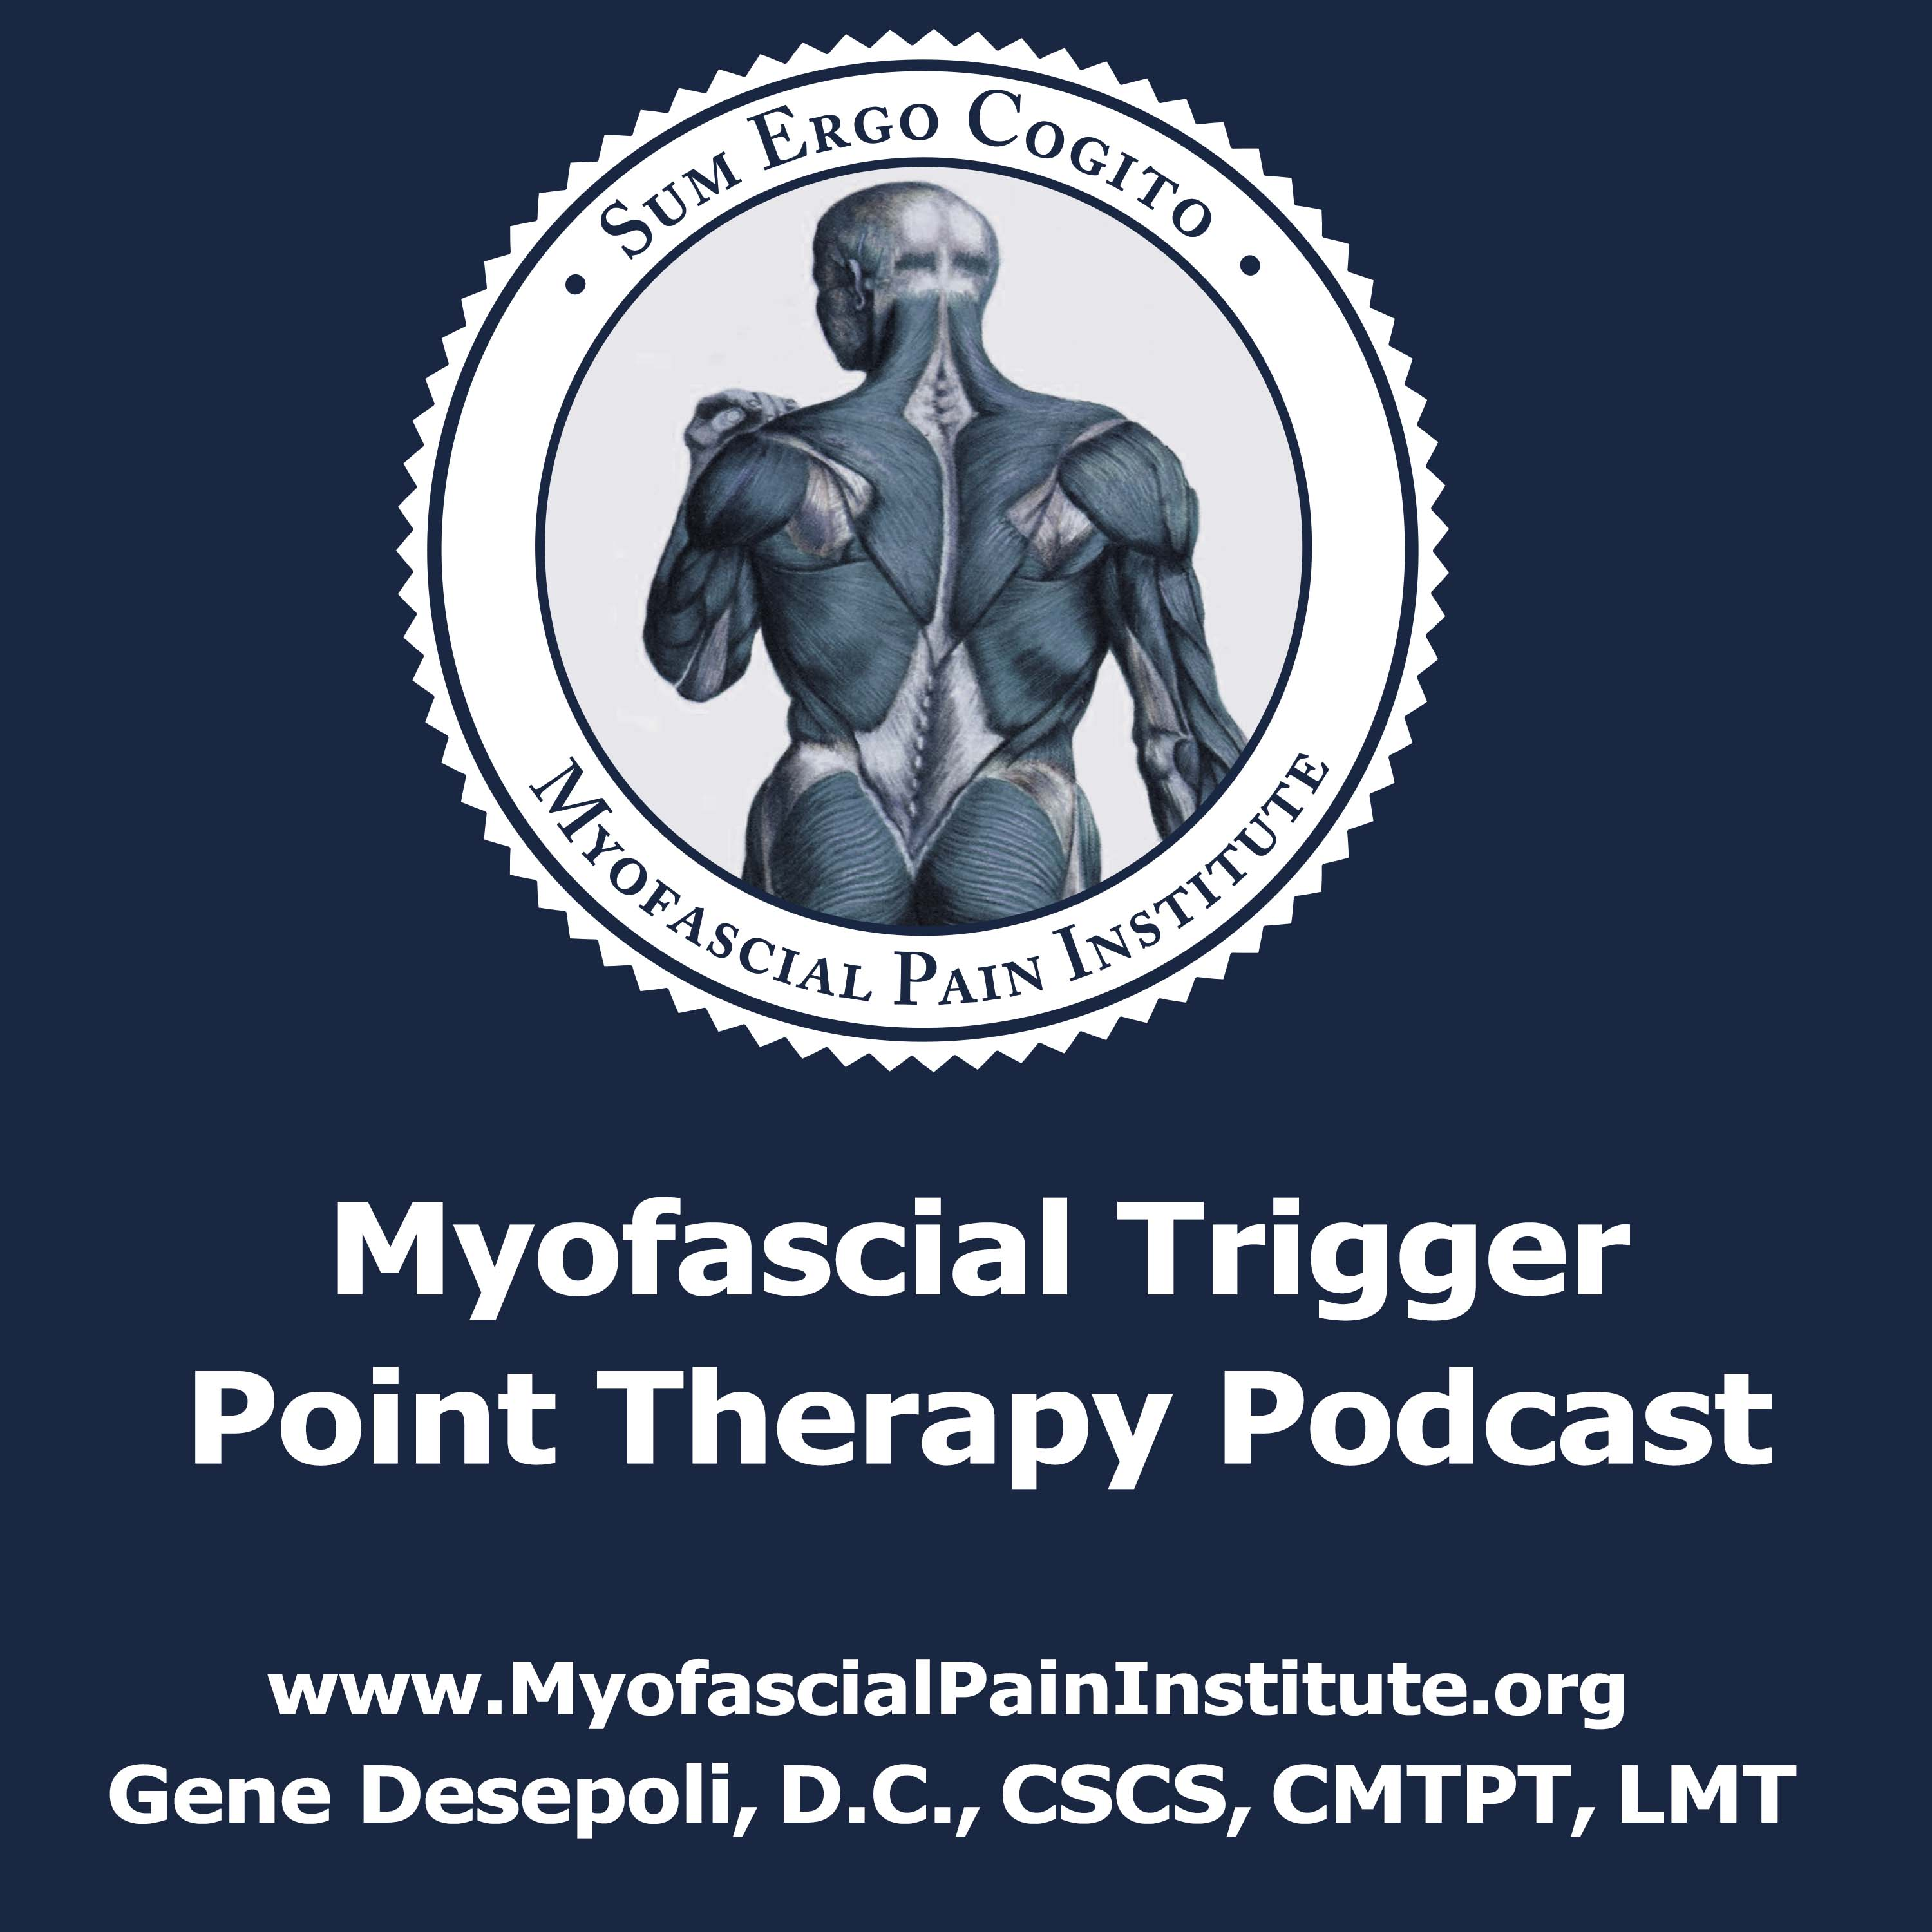 Myofascial Trigger Point Therapy Podcast